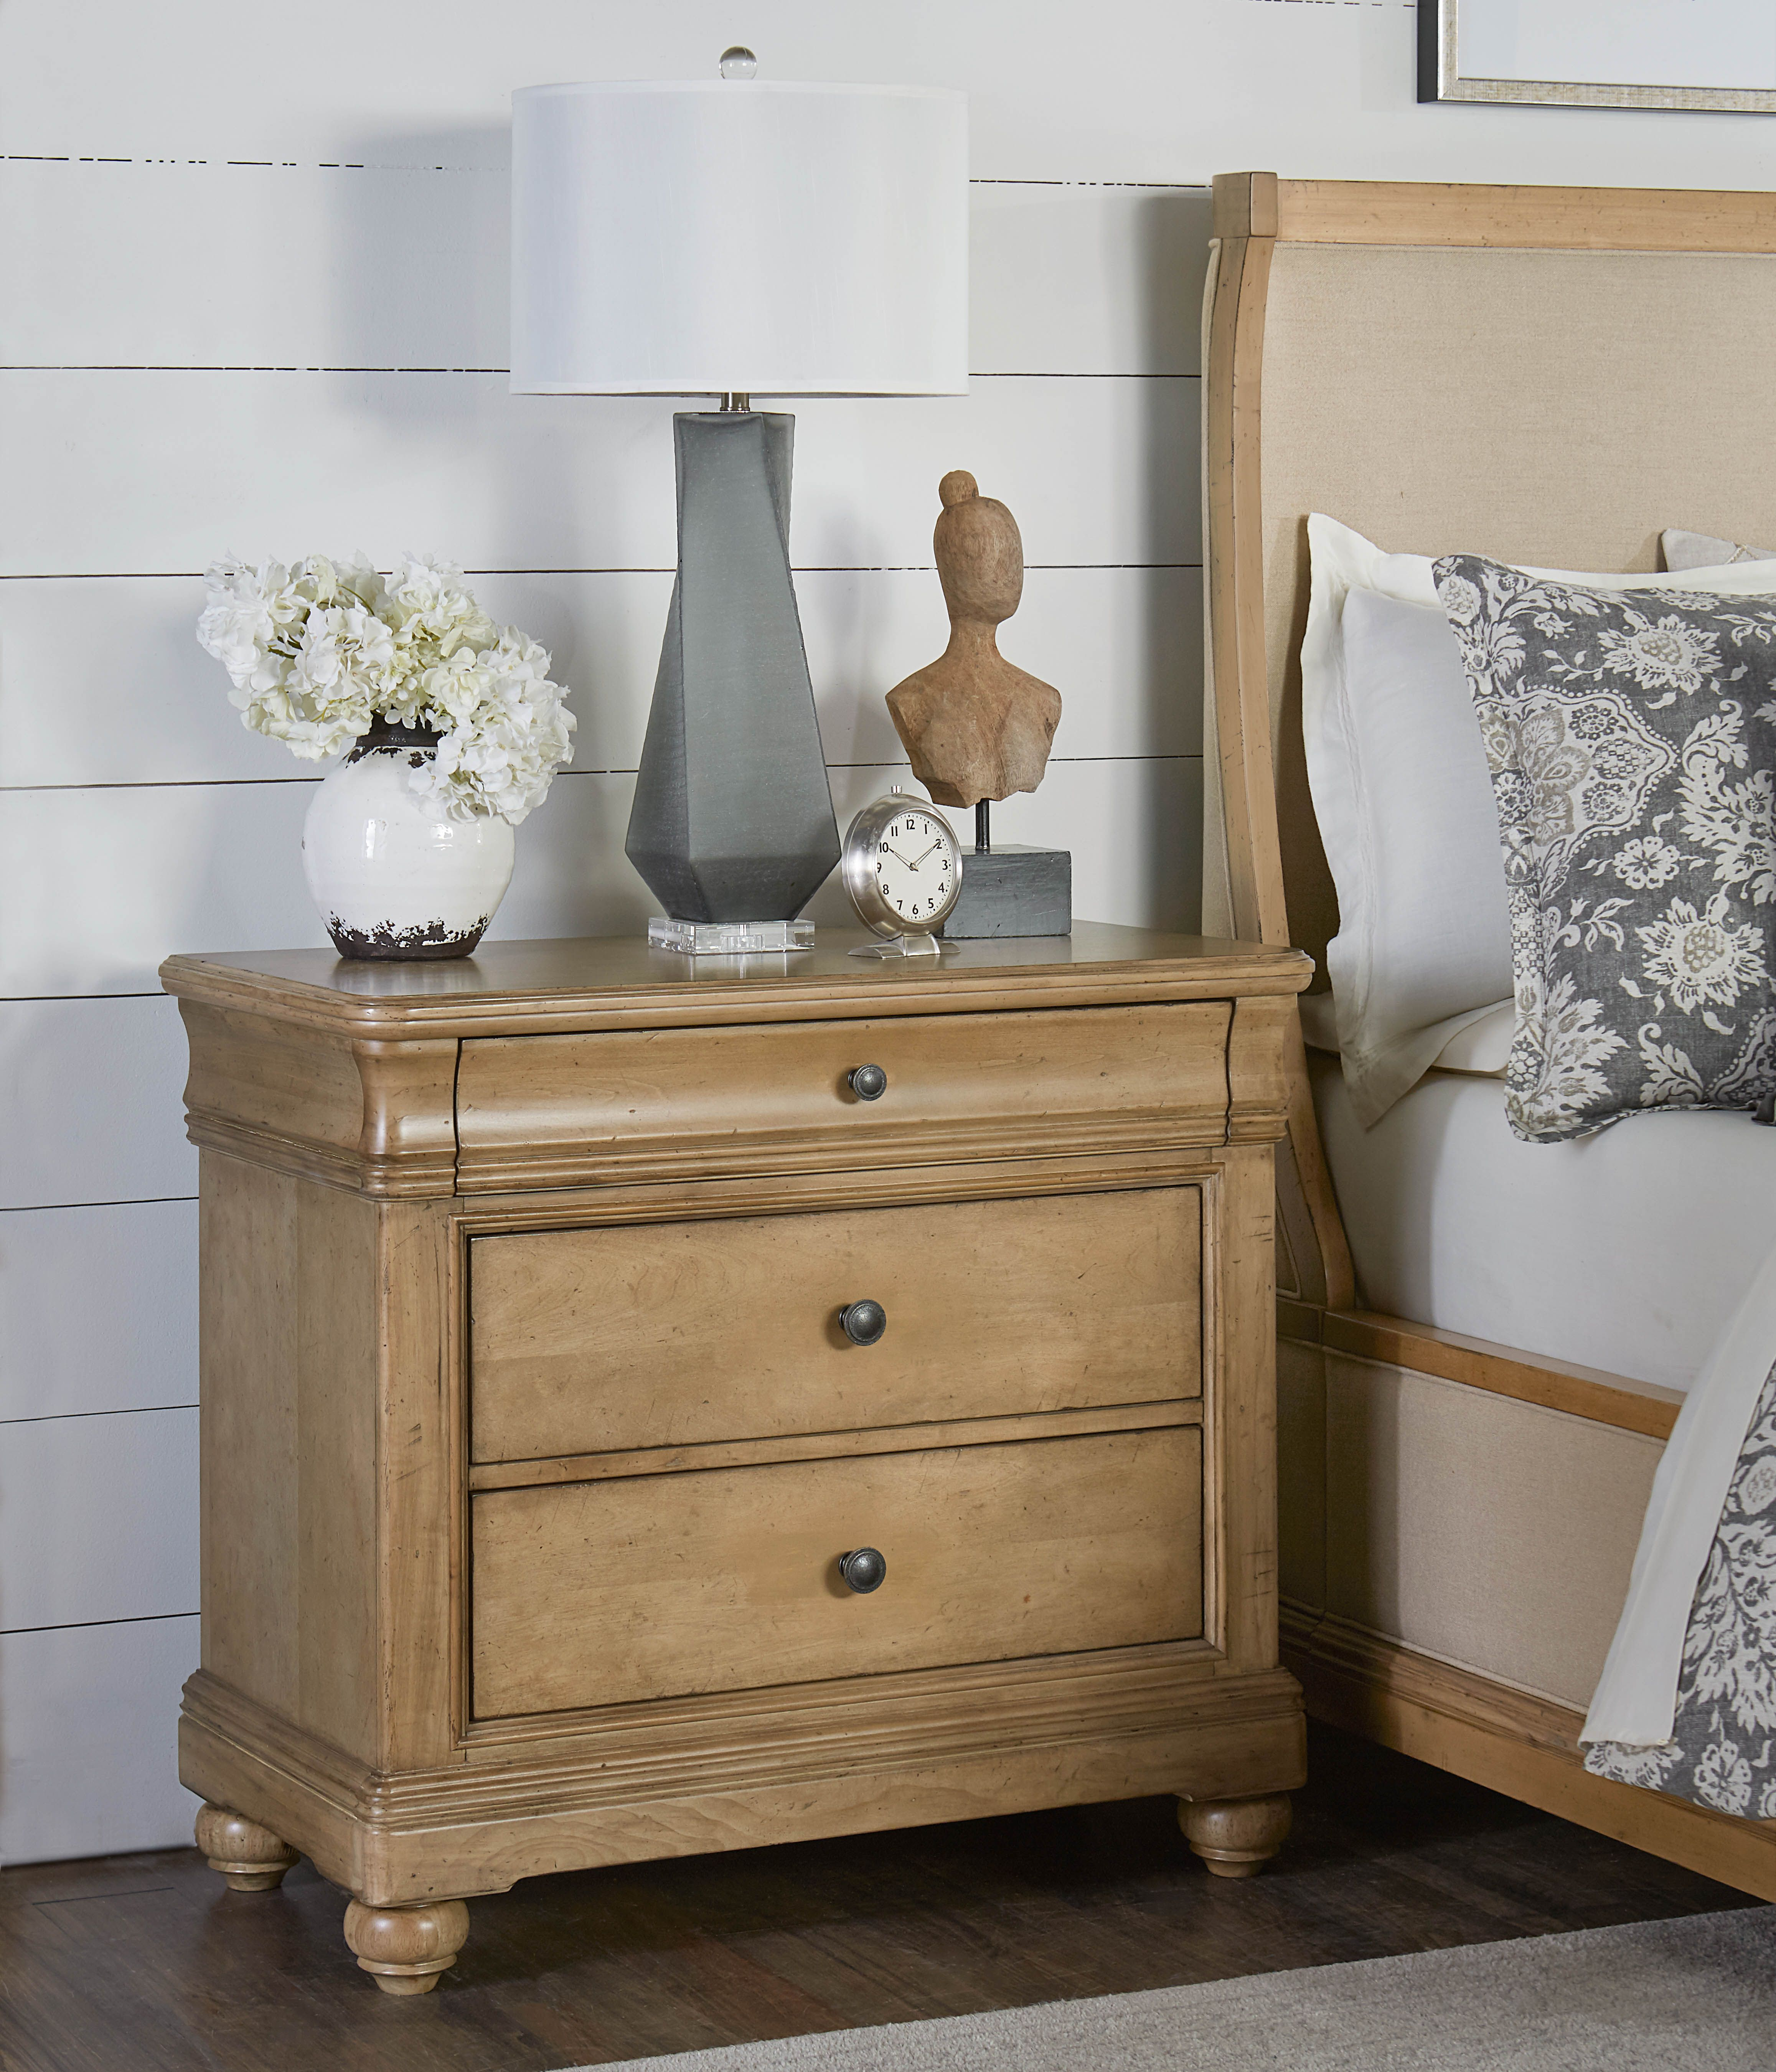 Ashby woods bedside chest legacy classic furniture homedecor